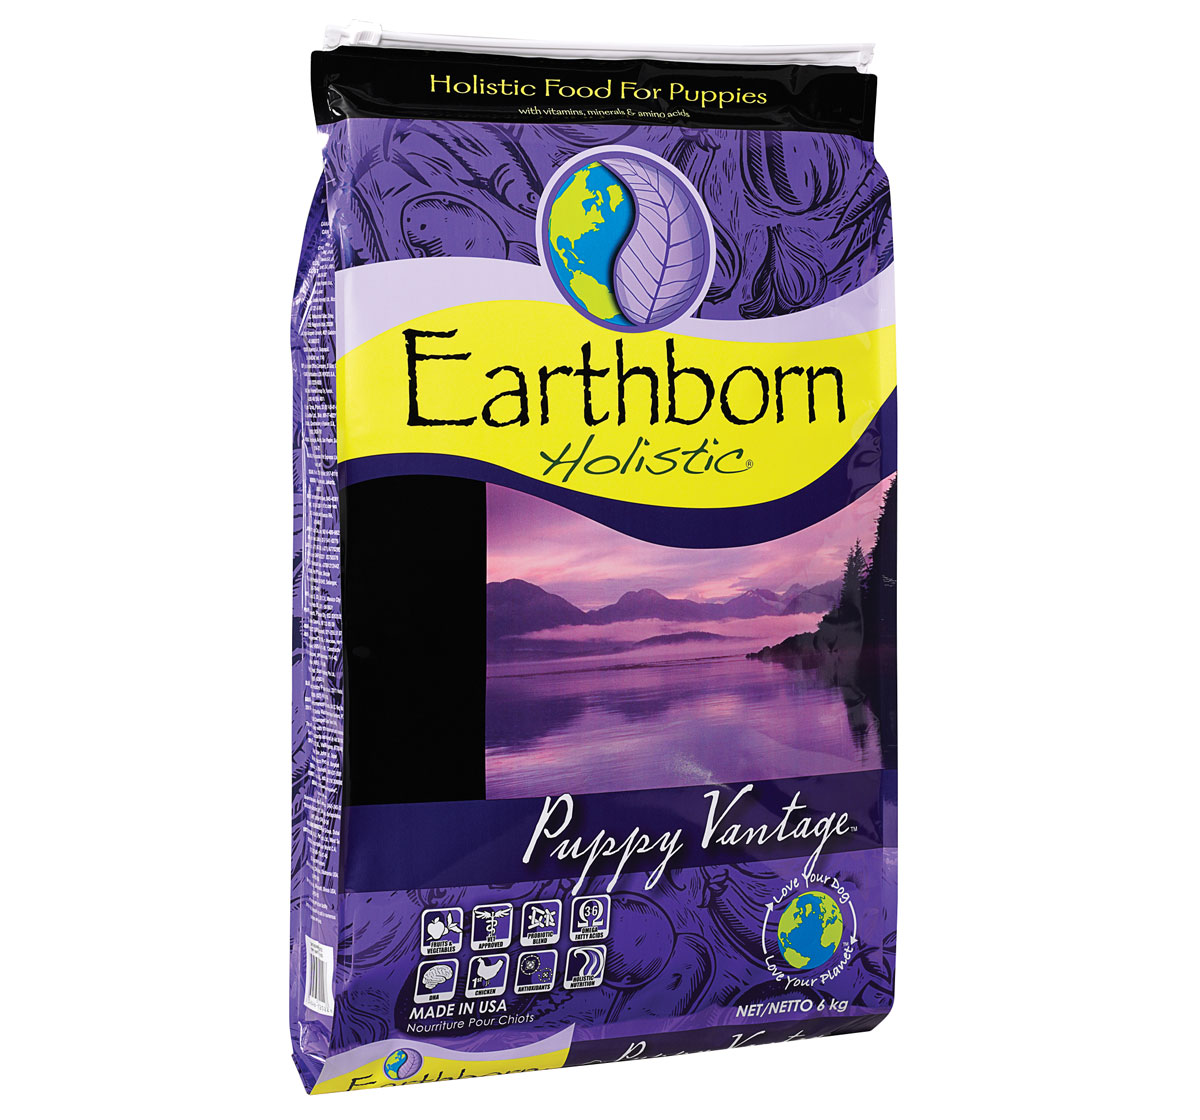 Who Makes Earthborn Dry Dog Food